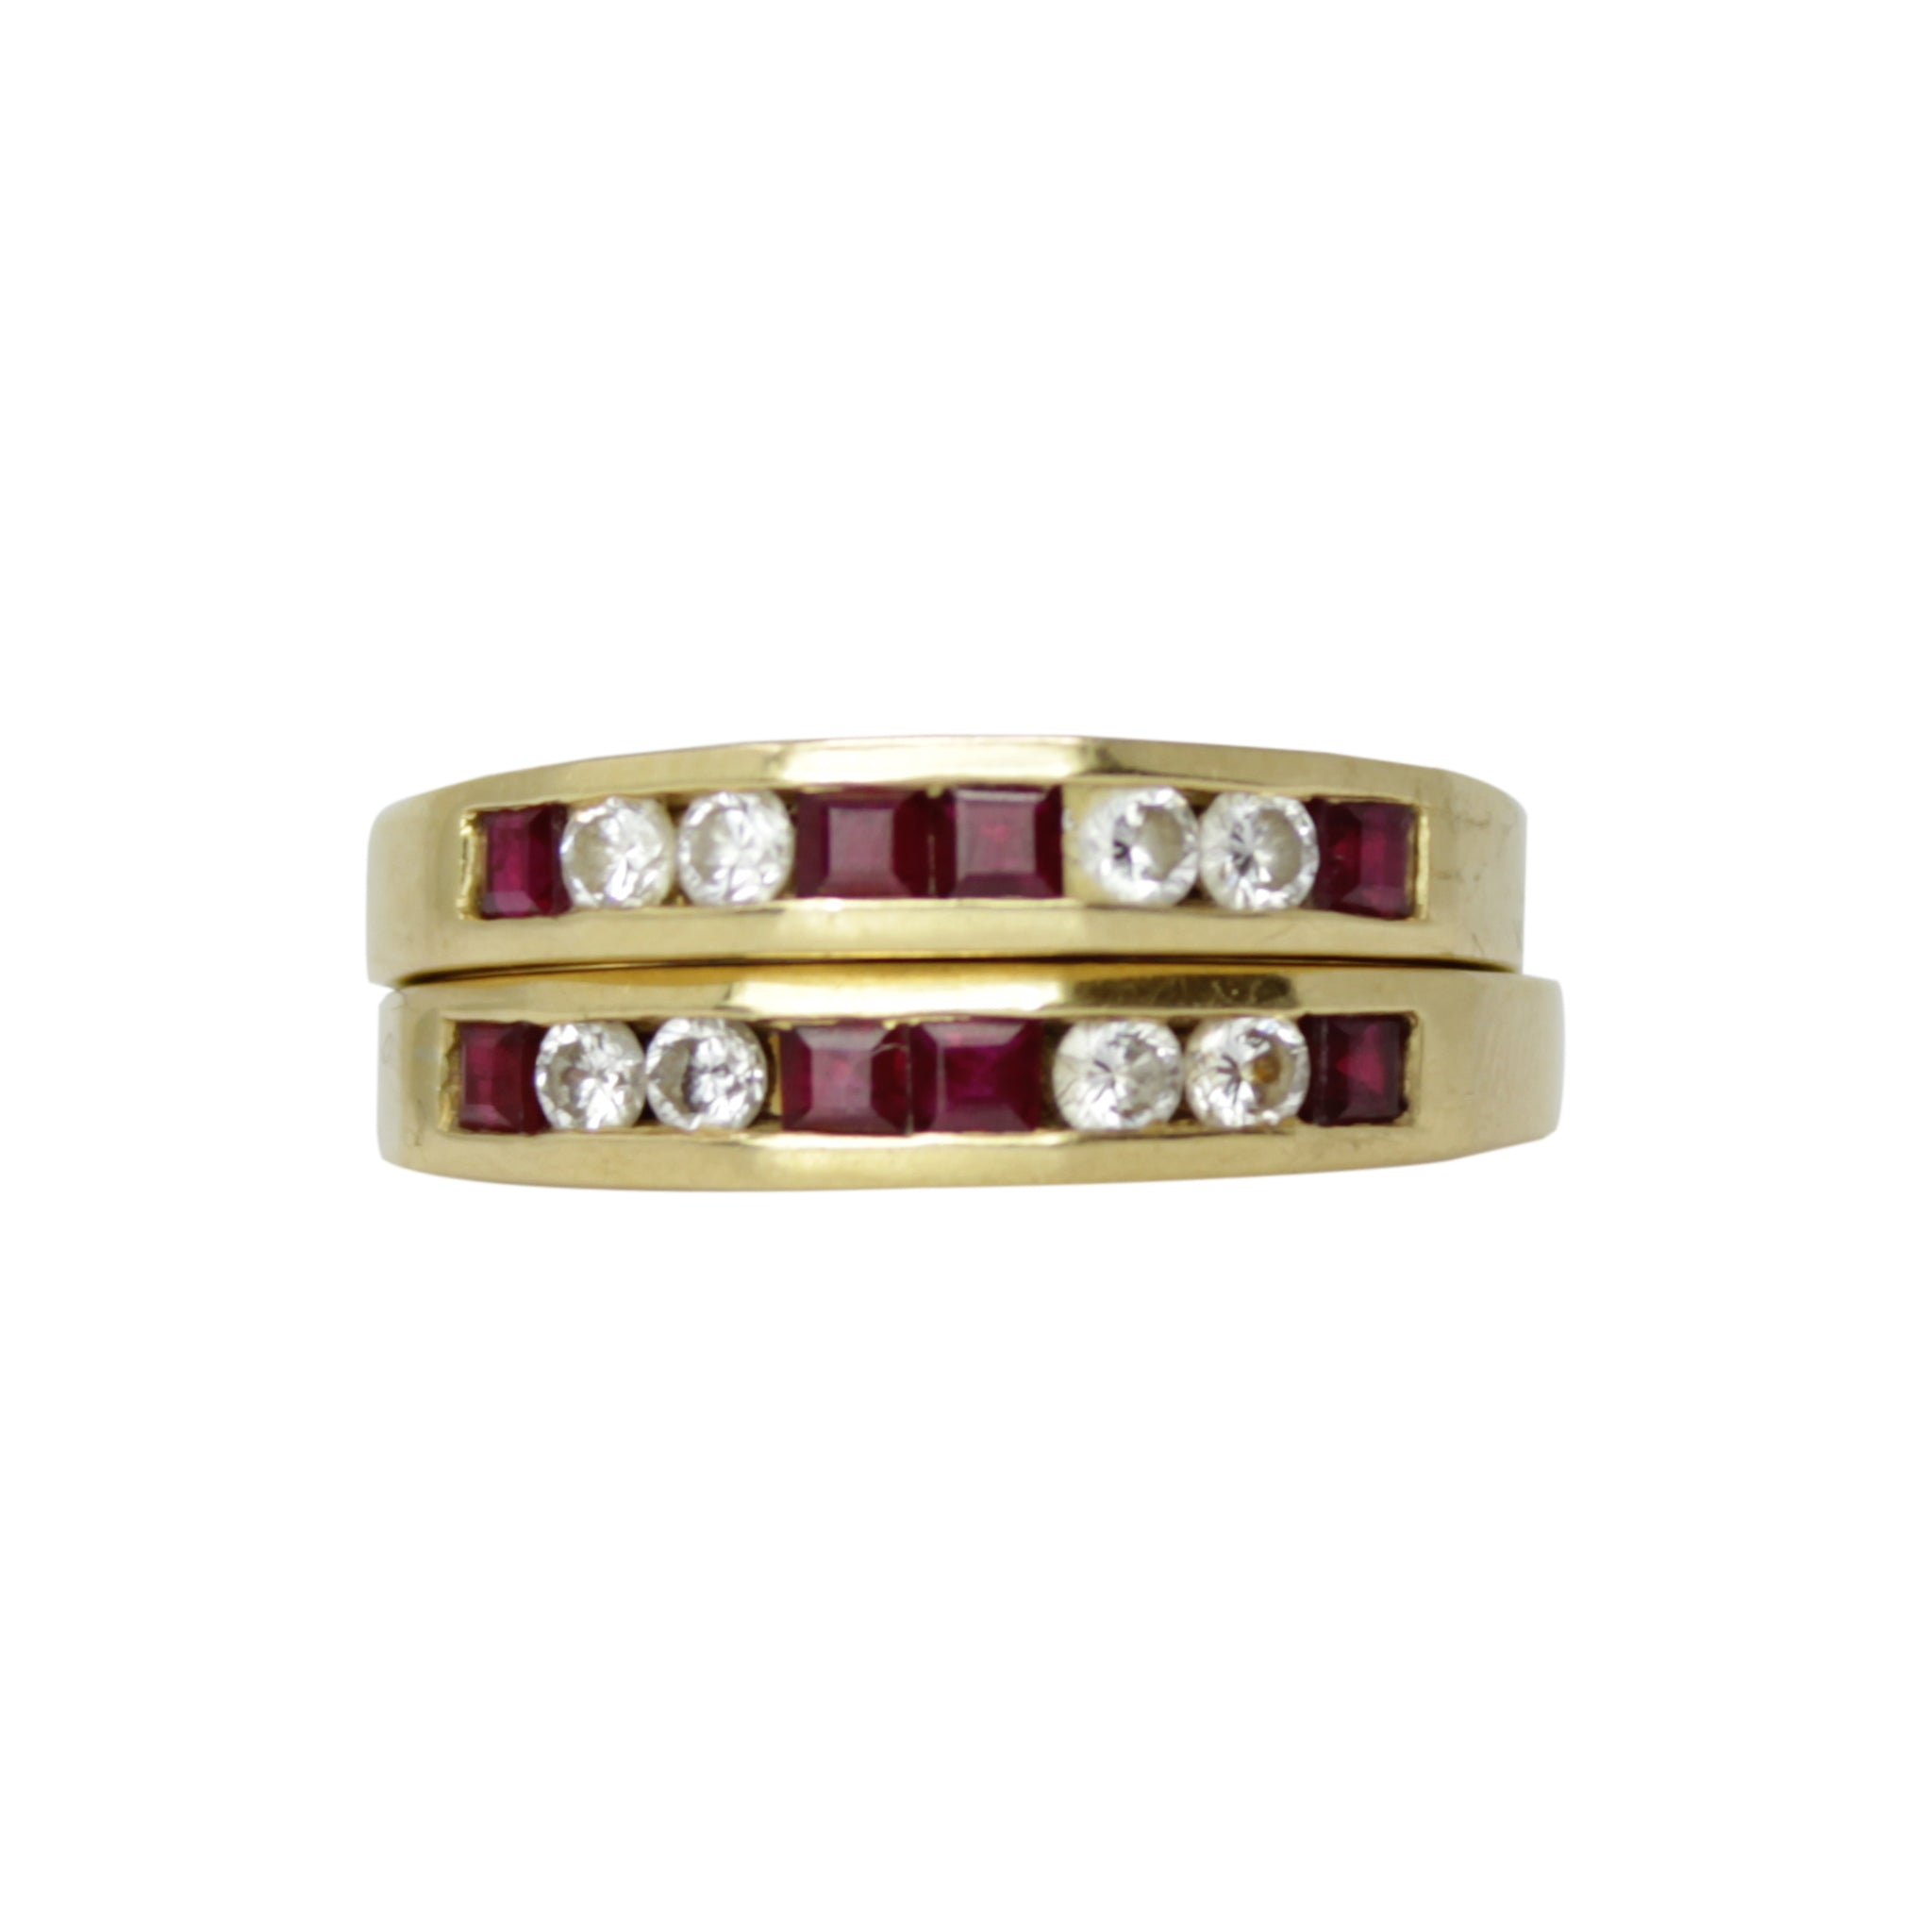 Pair of 18k Yellow Gold Diamond and Ruby Rings